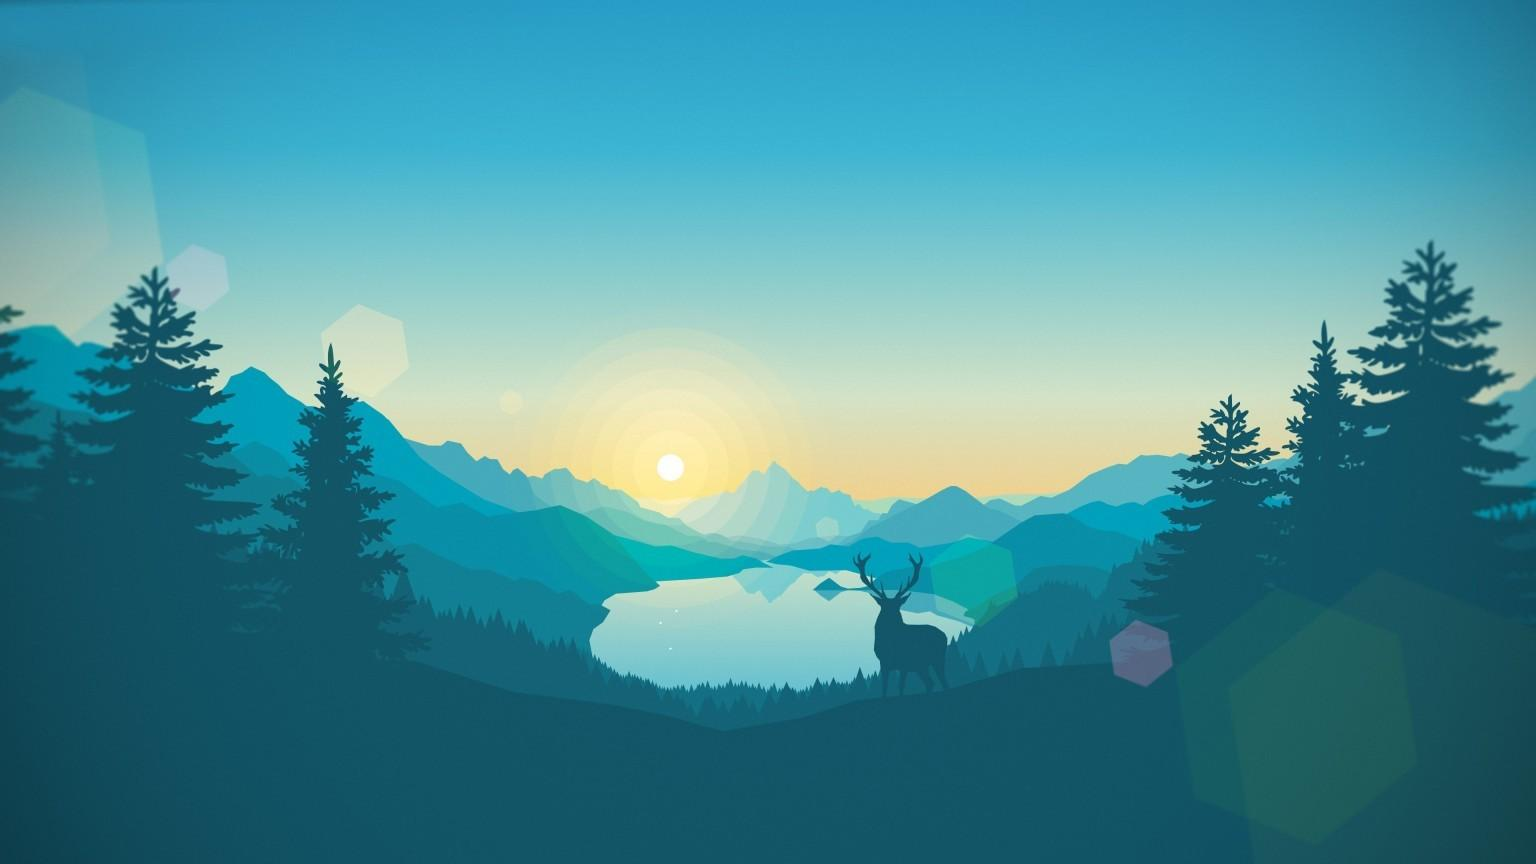 Download 1536x864 Firewatch, Deer, Forest, Night Wallpapers